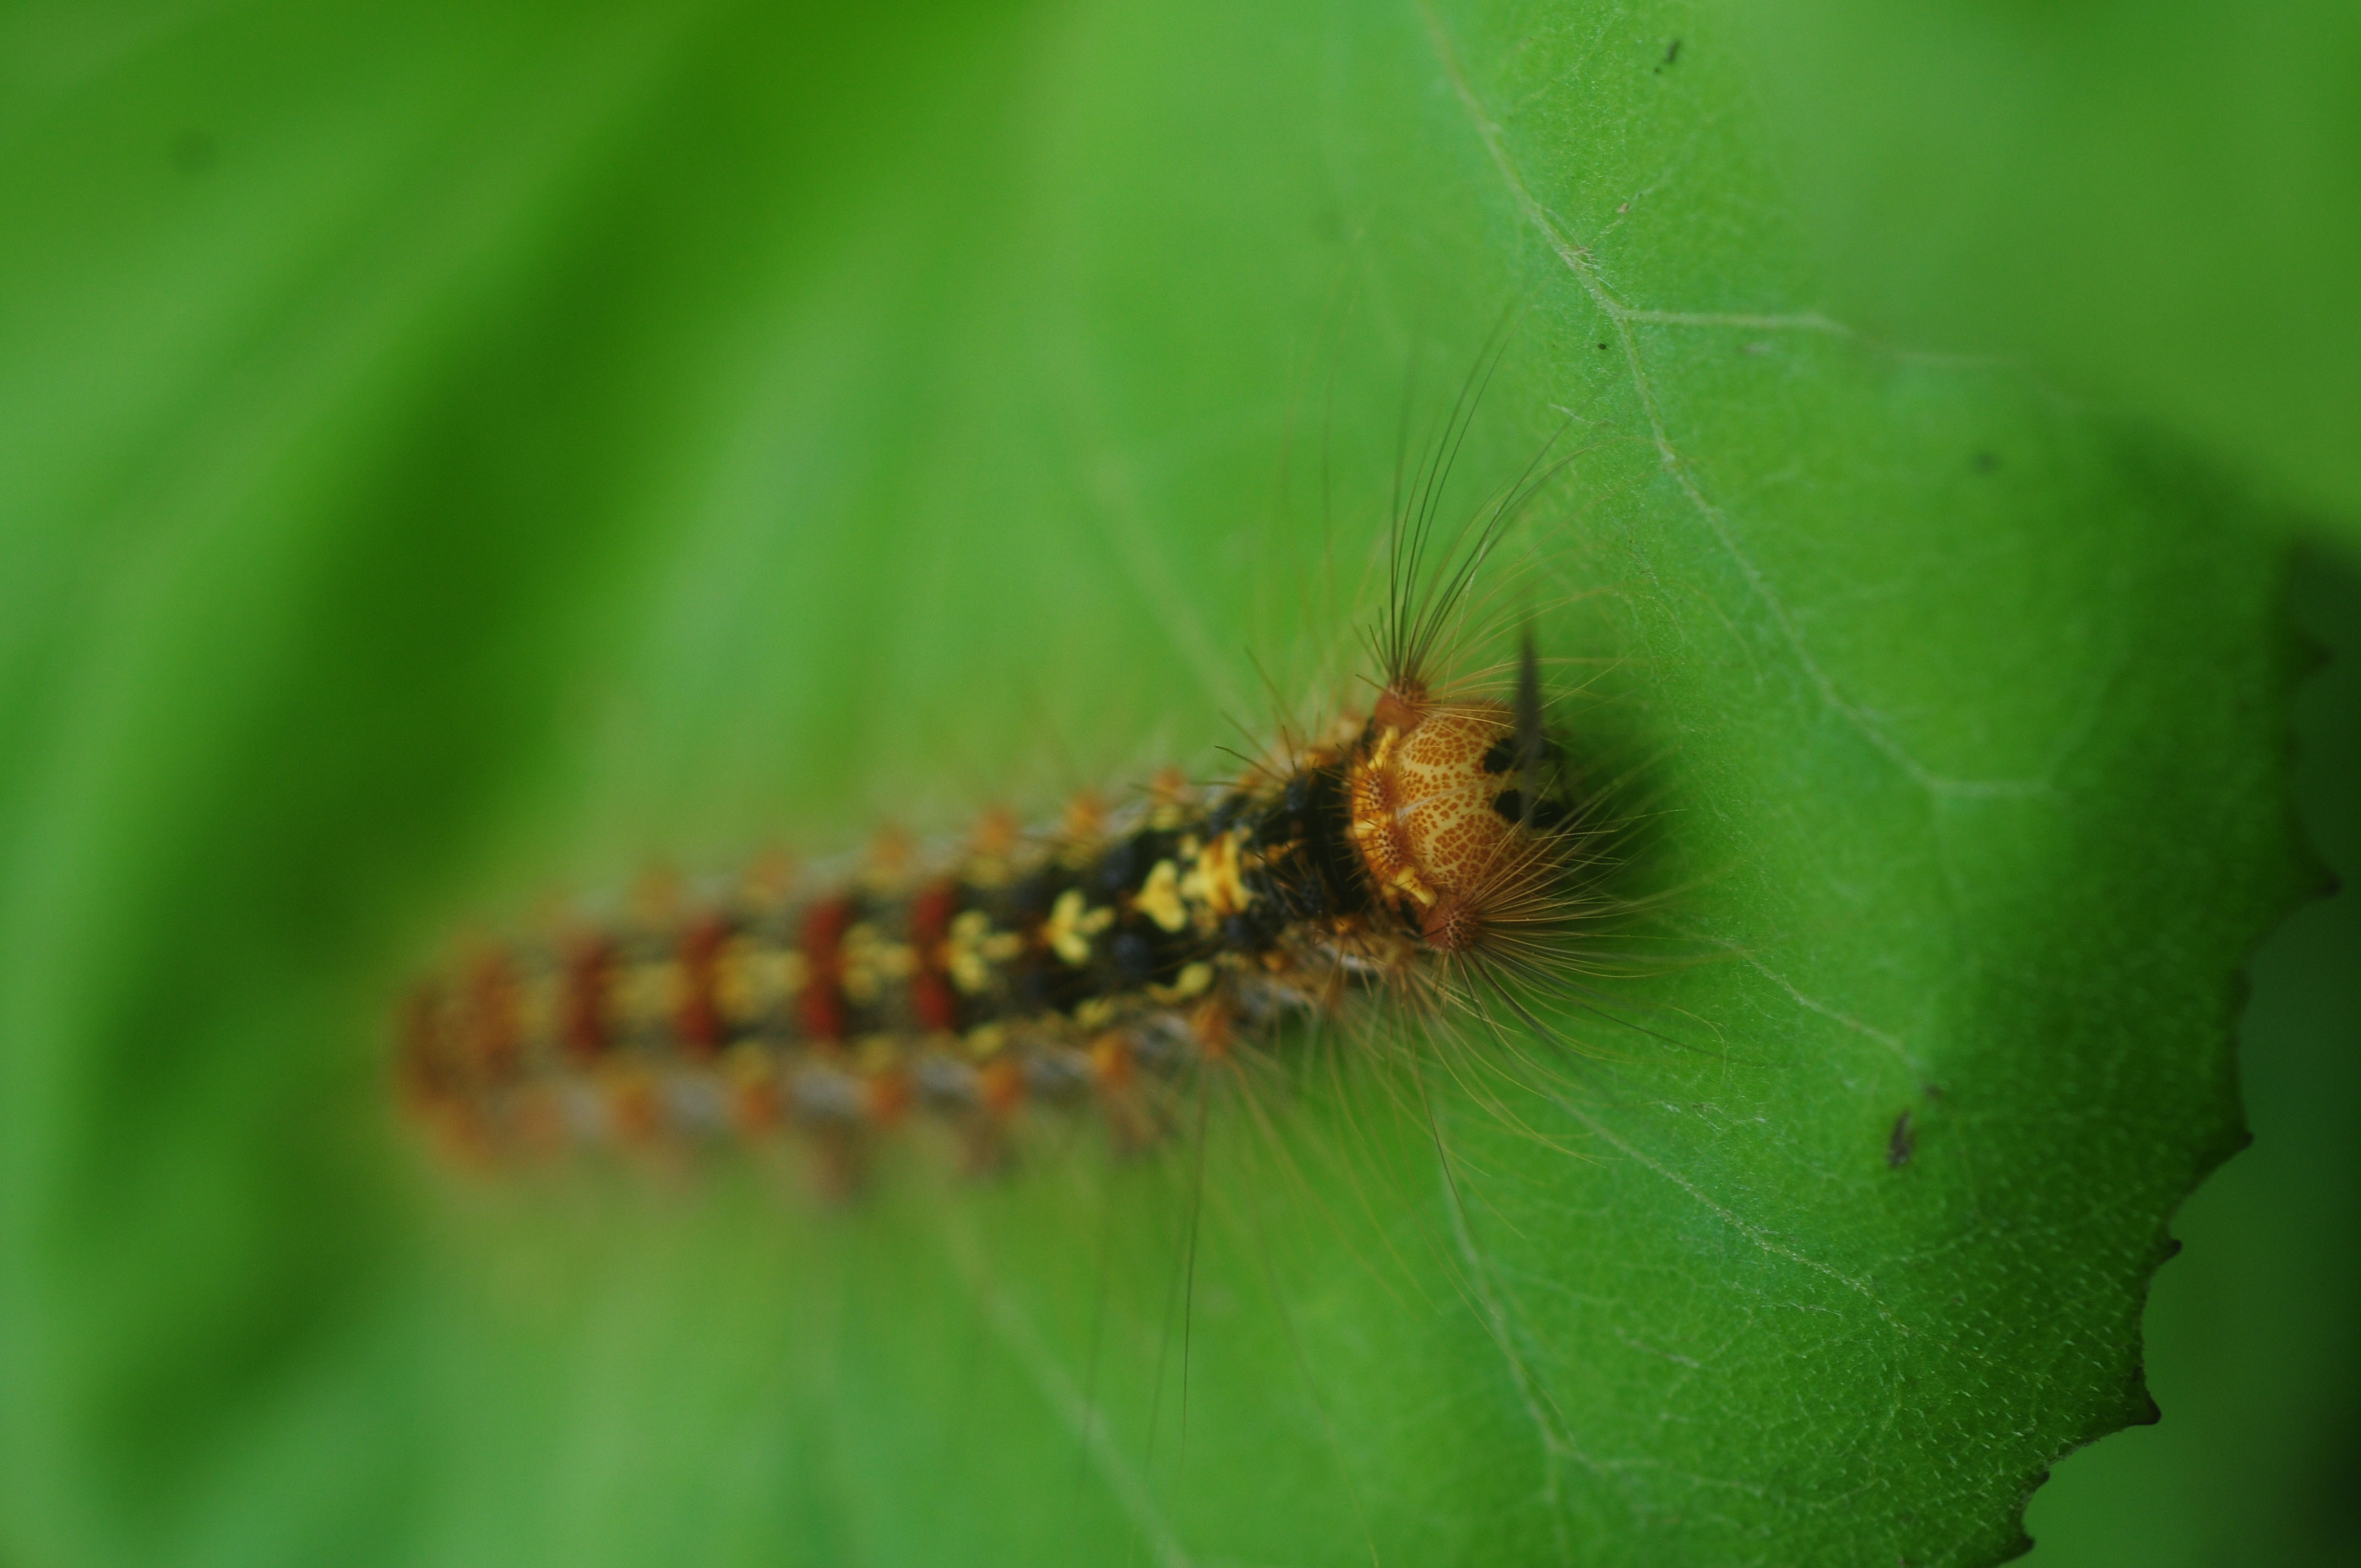 Toxic gypsy moths — a most unpleasant infestation | The ...